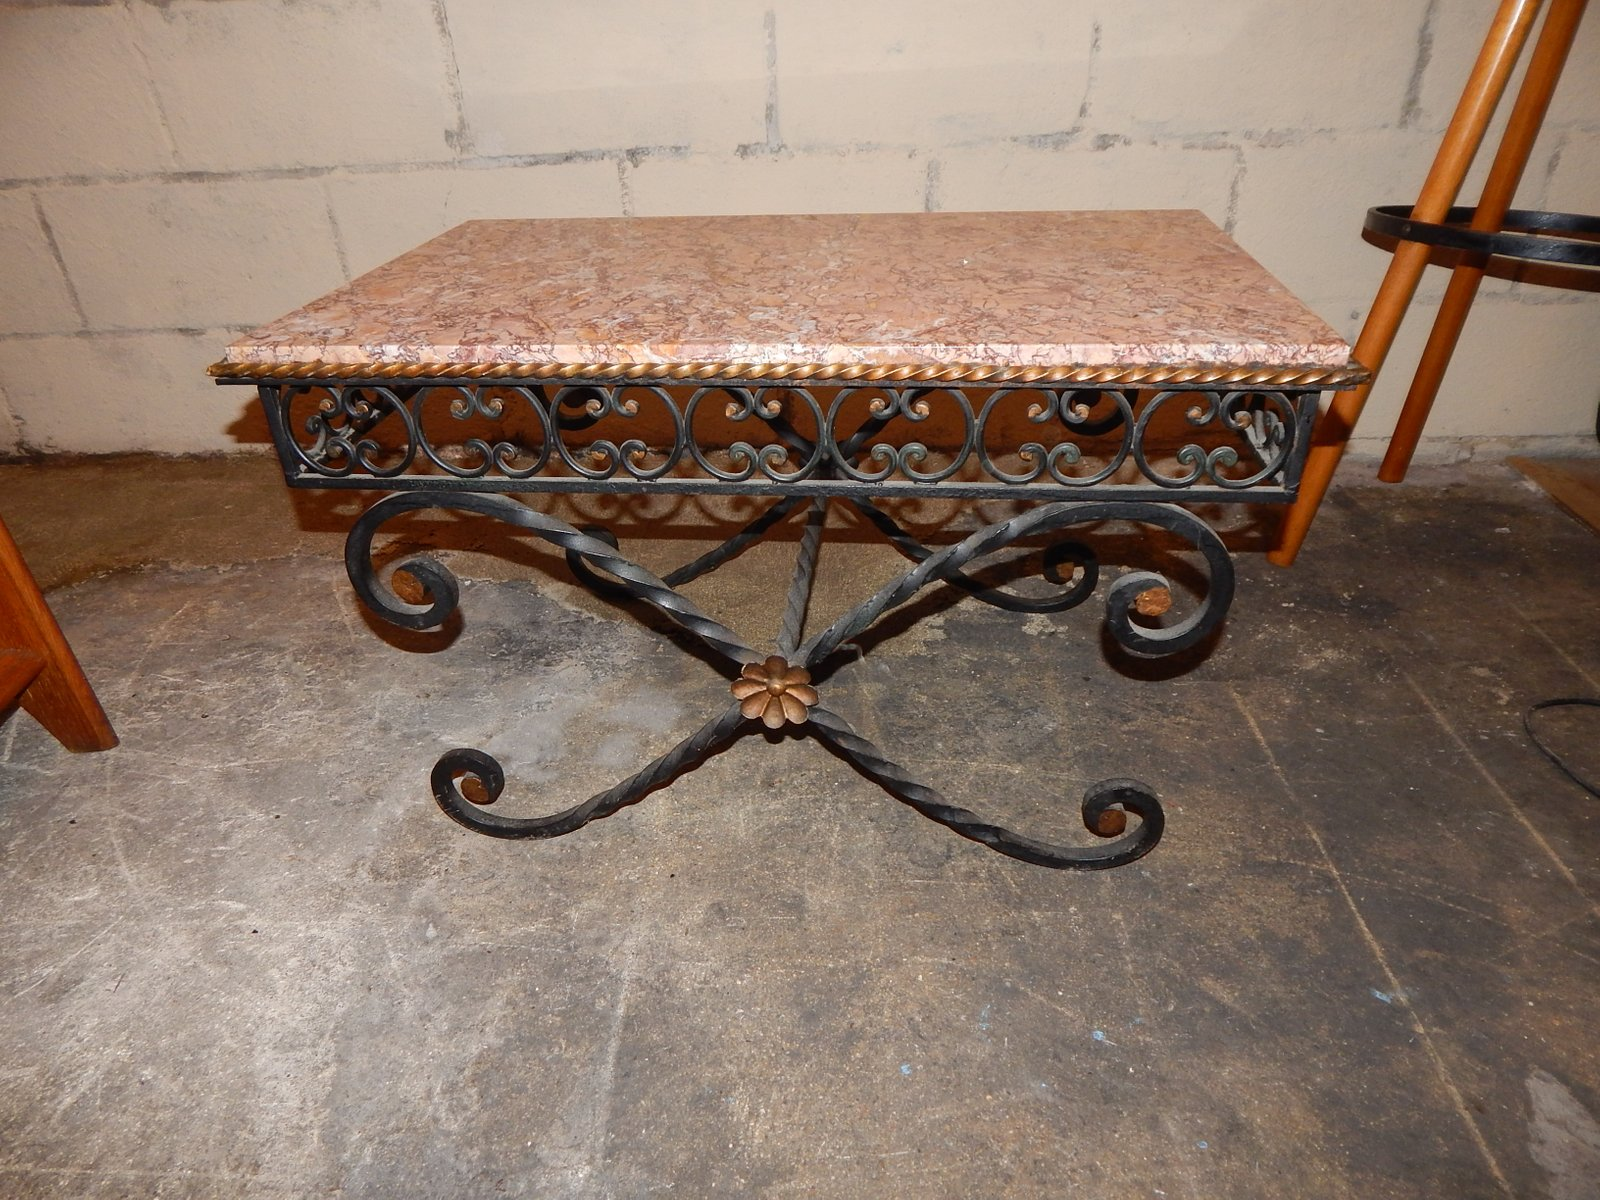 Vintage wrought iron marble coffee table 1930s for sale for Marble and wrought iron coffee table